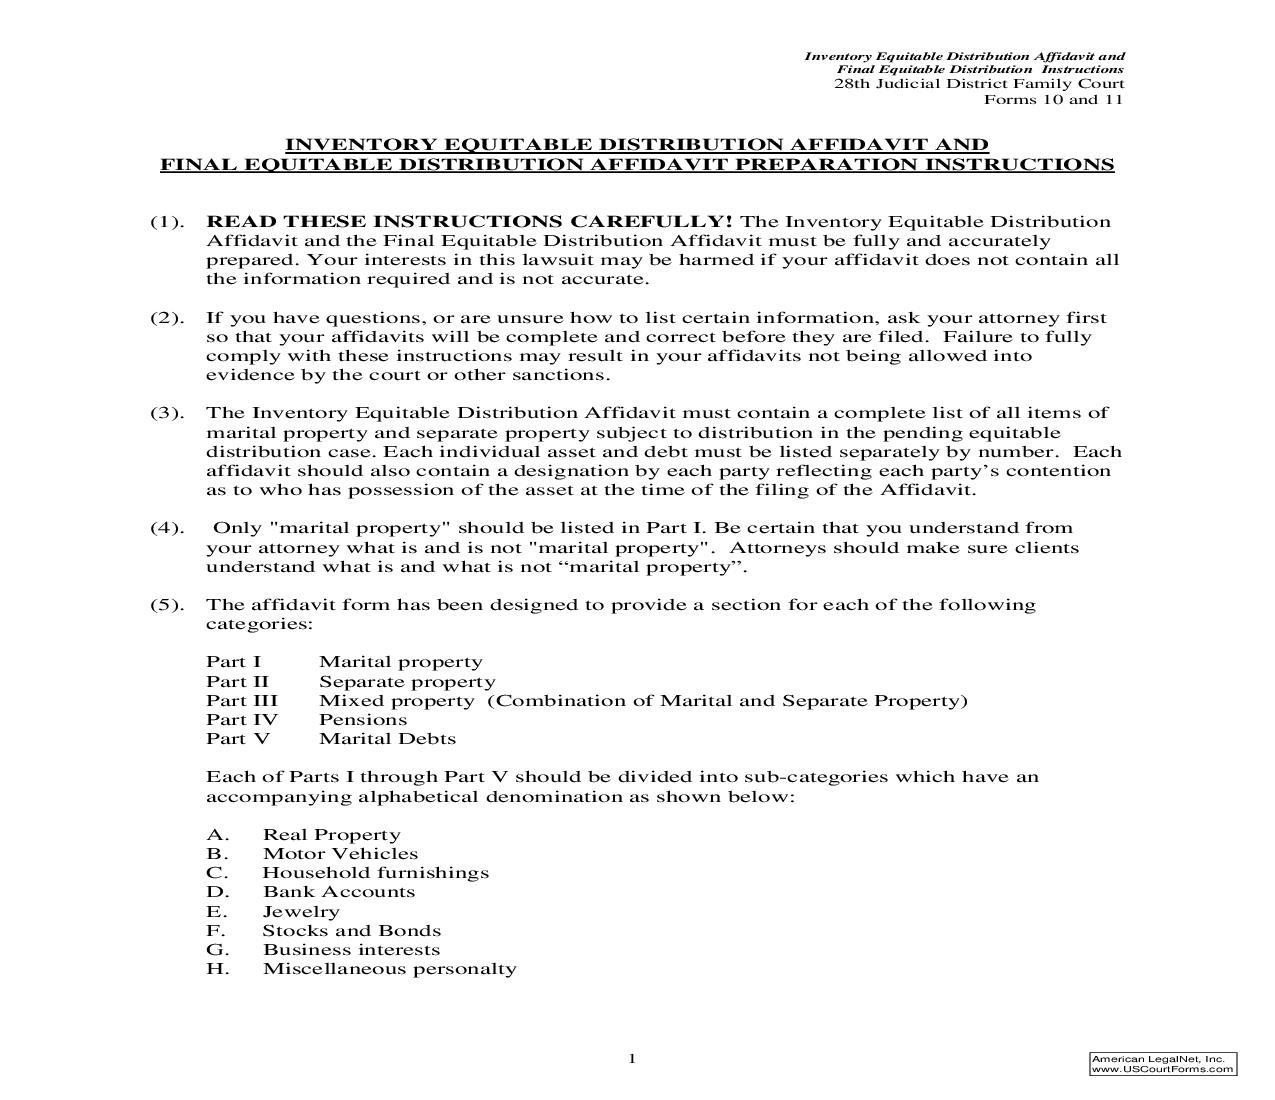 Inventory Equitable Distribution Affidavit And Final Equitable Distribution Affidavit Preparation Instructions {Forms 10 and 11}   Pdf Fpdf Doc Docx   North Carolina